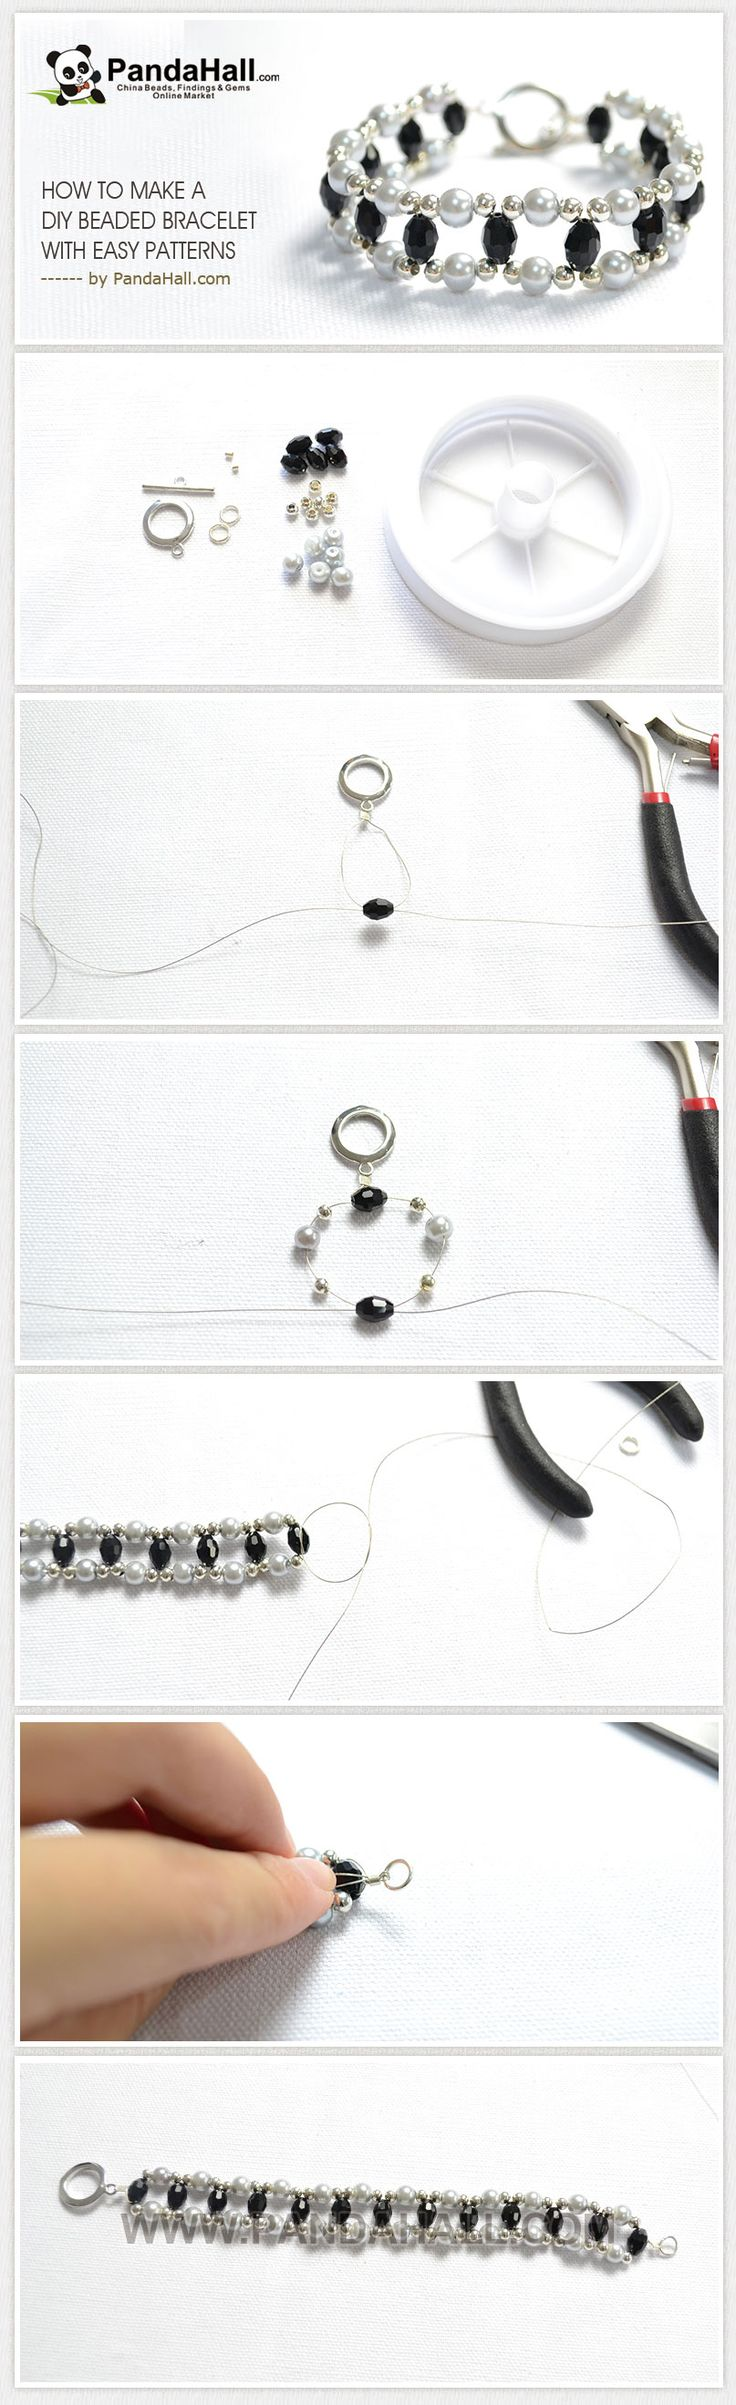 Make a DIY Beaded Bracelet with Easy Beading Patterns